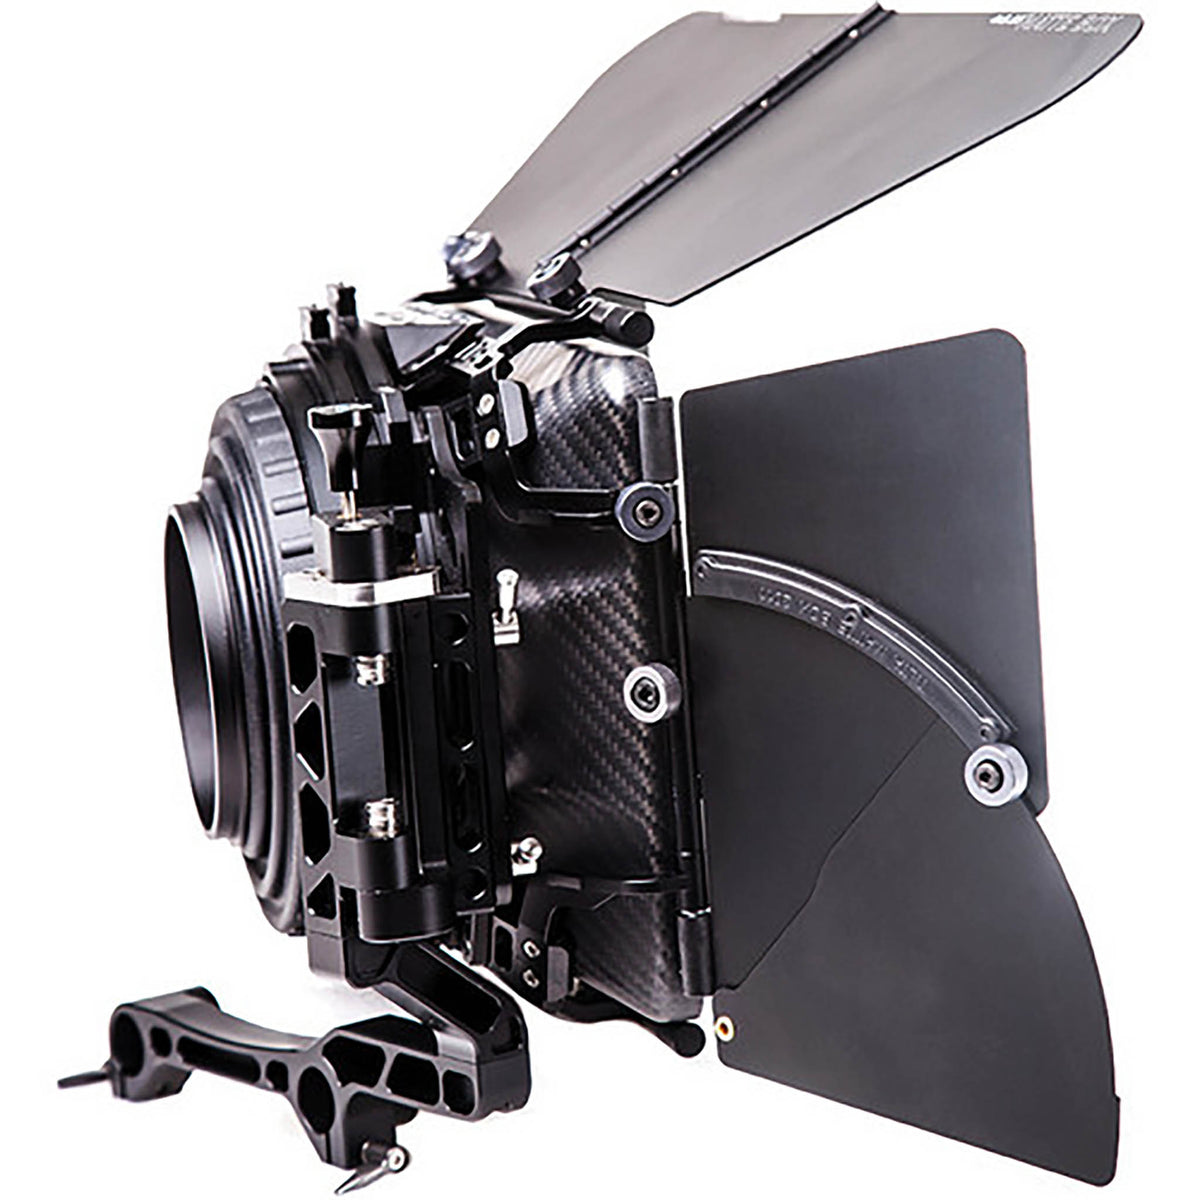 Tilta MB-T04 swing away matte box right